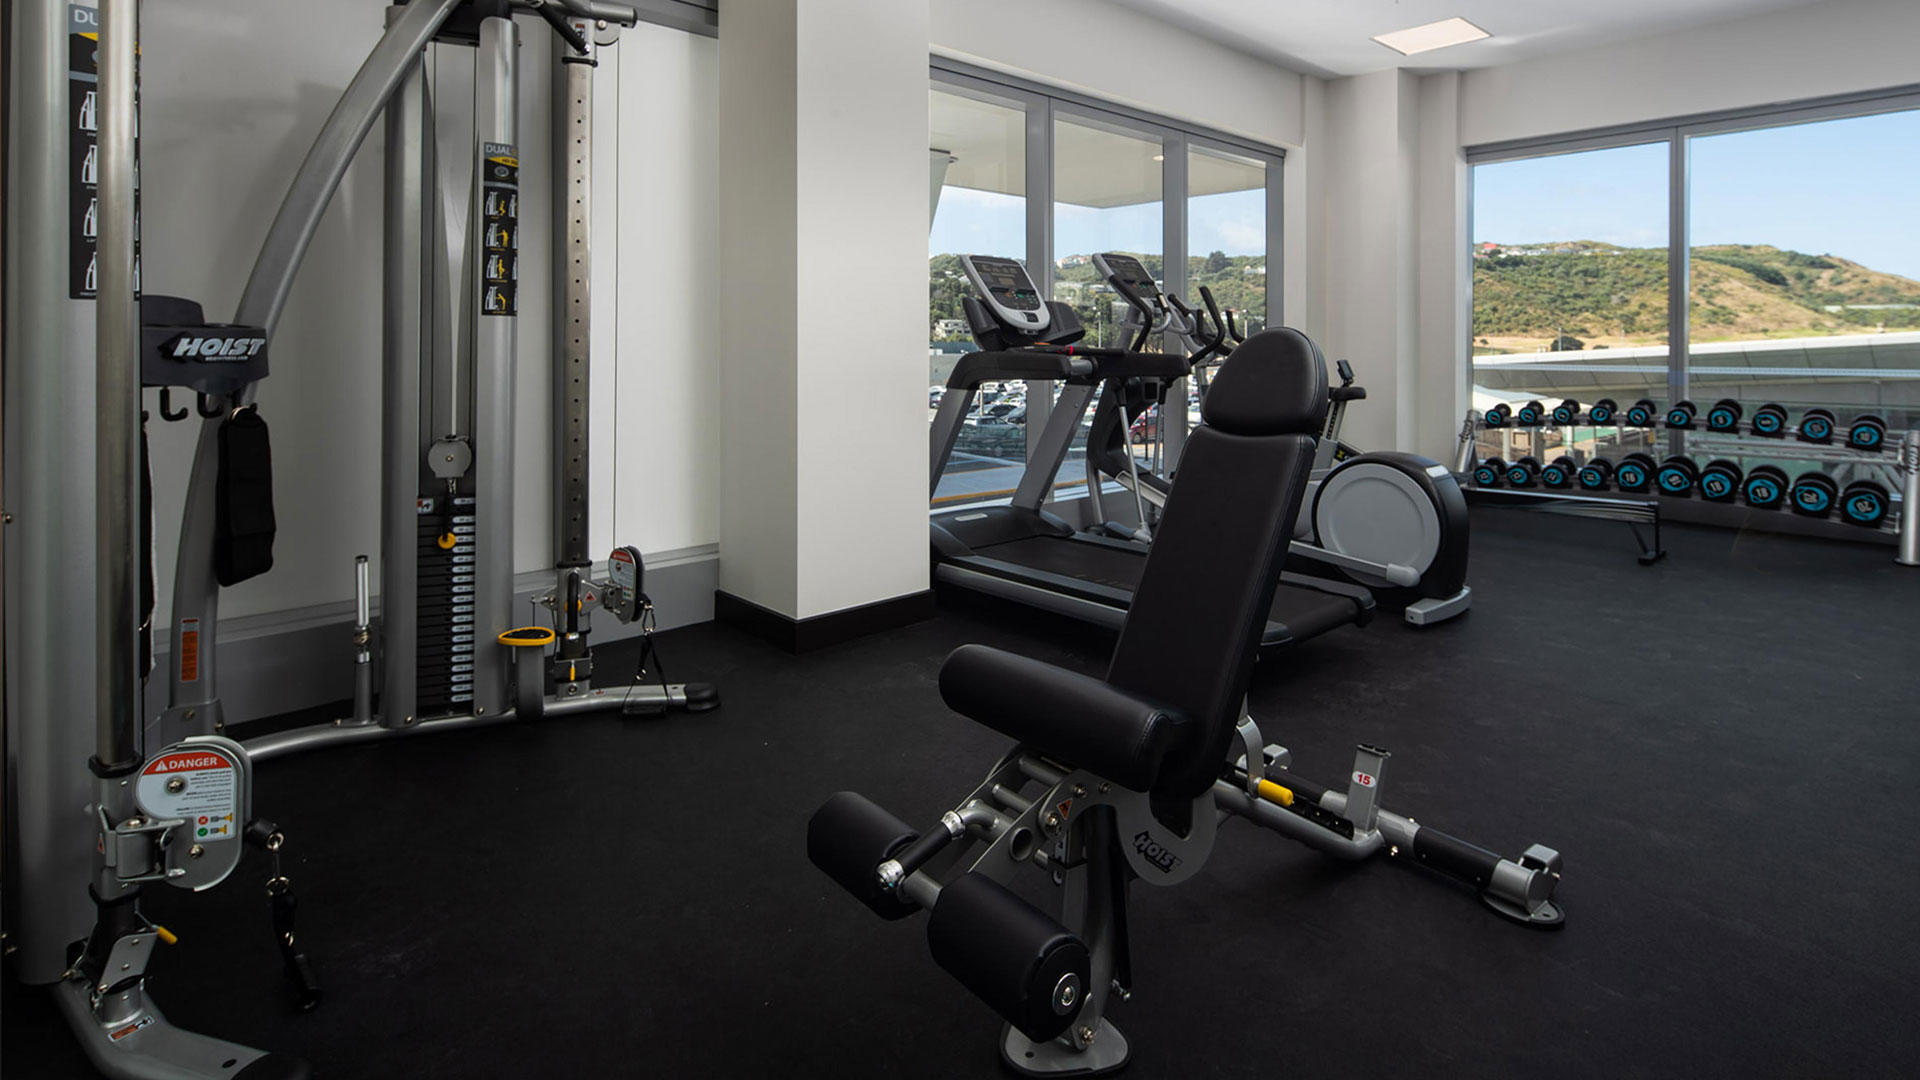 Rydges_Wellington_Flughafen_Gym